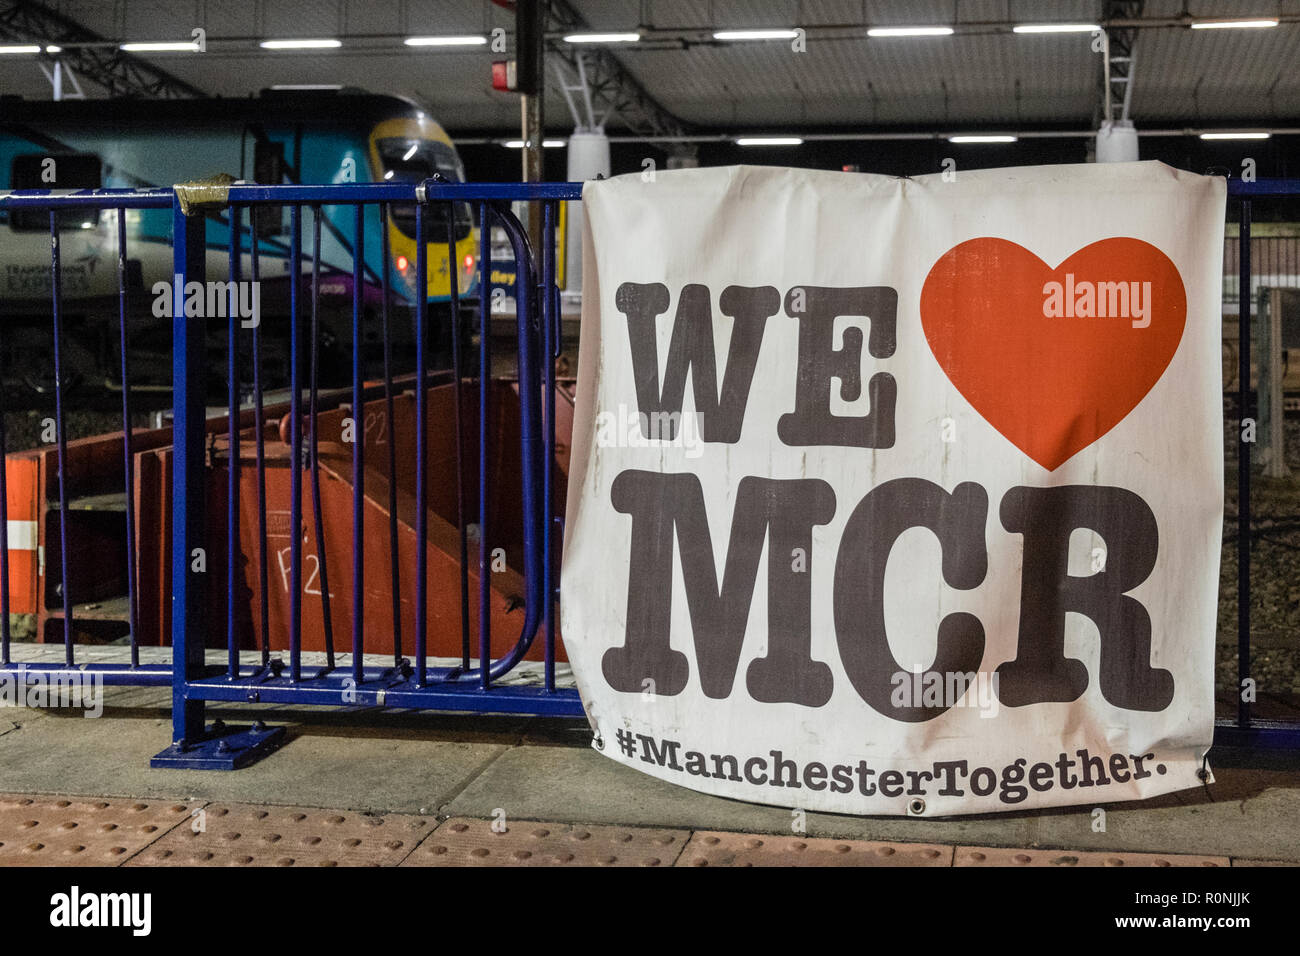 Manchester Airport,train,station,We heart,love,MCR,Manchester,symbol,poster,sign,signage,handmade, Manchester Together, - Stock Image